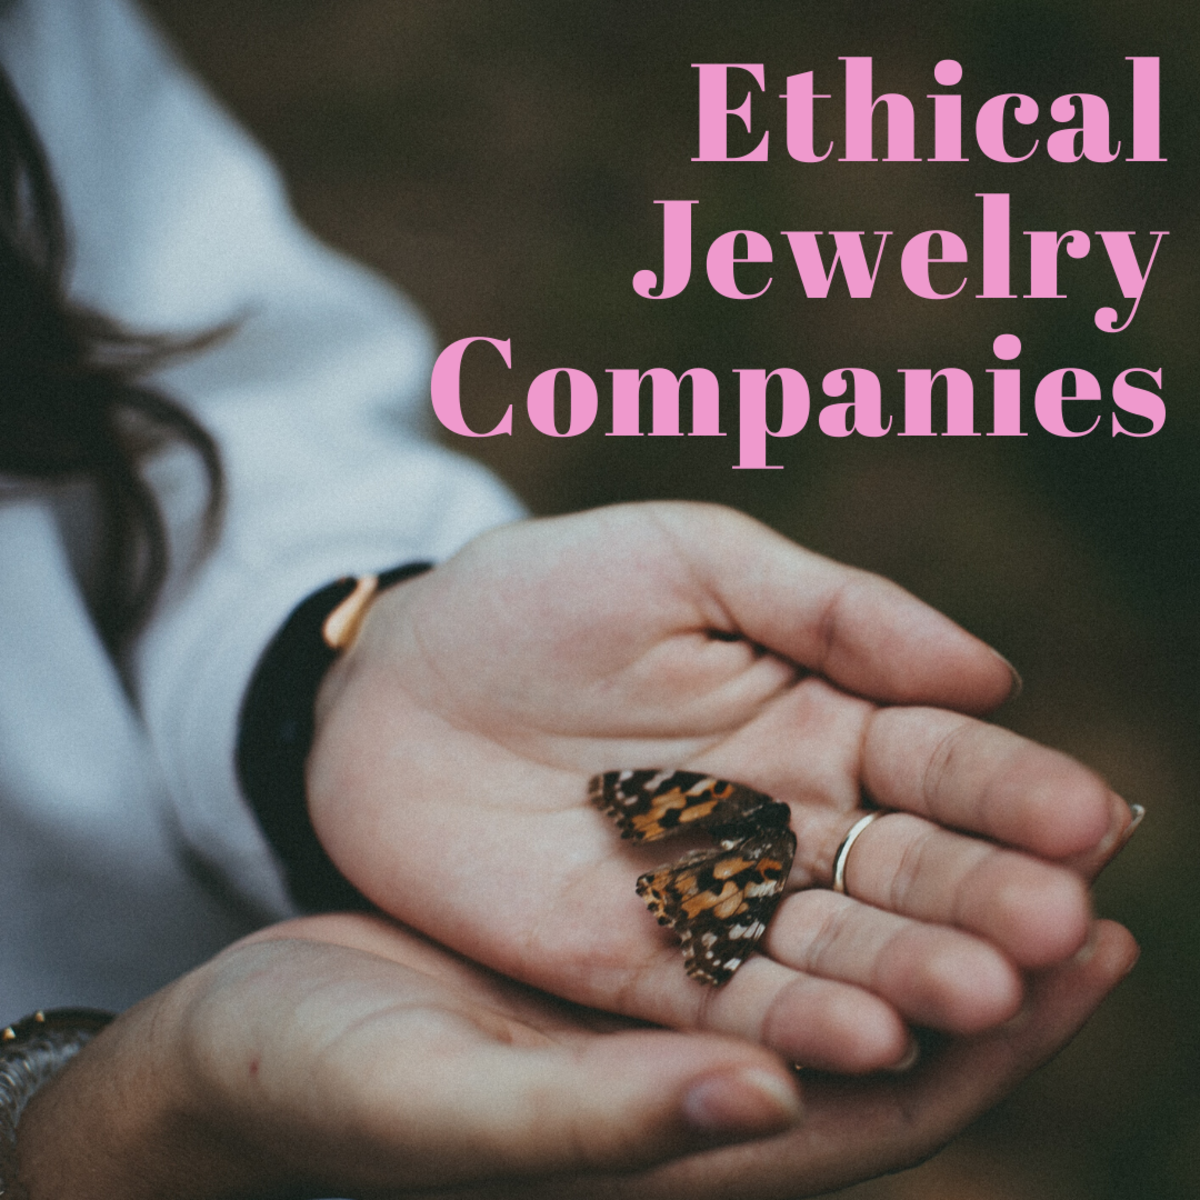 Where can you buy ethical, eco-friendly jewelry?